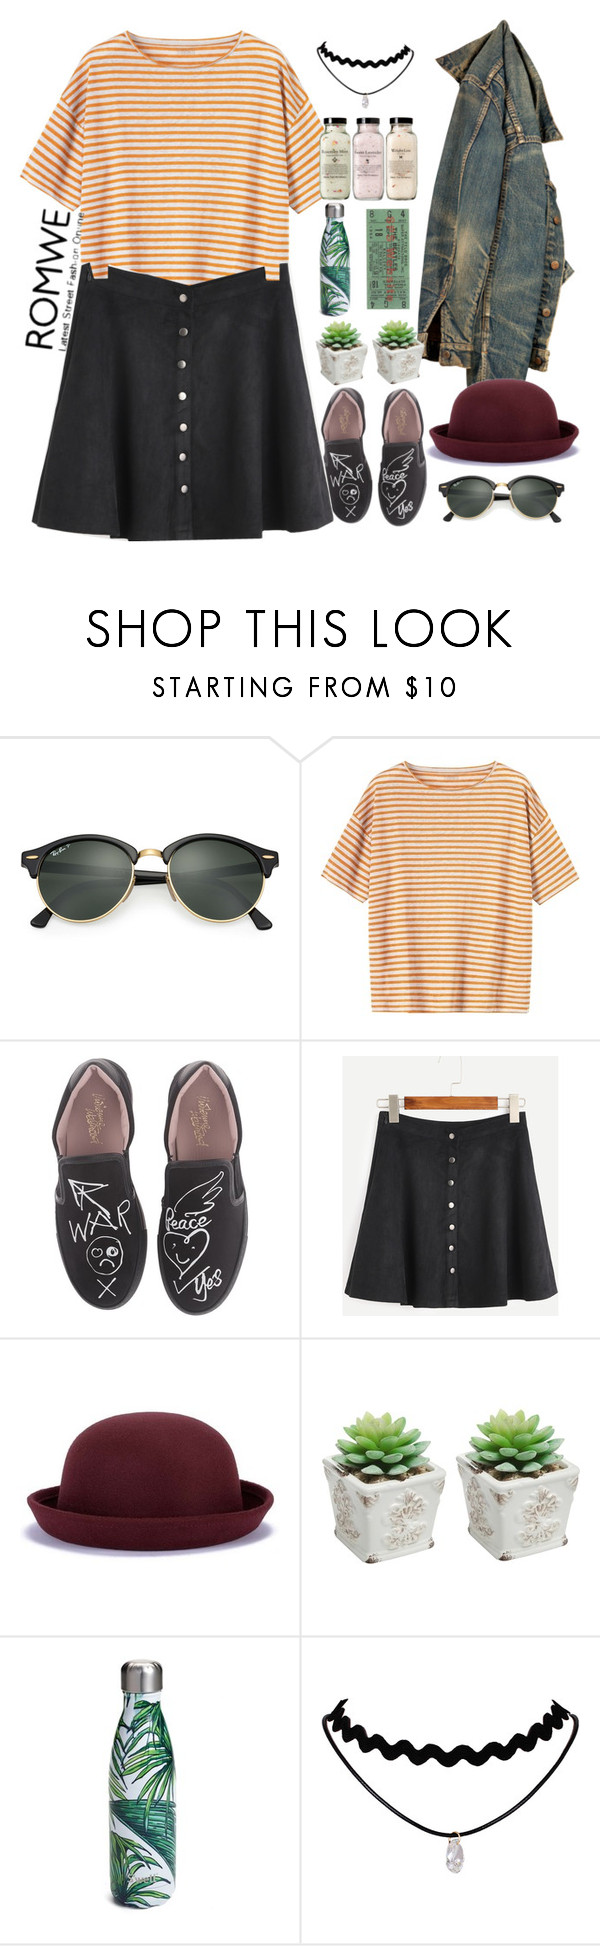 """""""Untitled #112"""" by mariana-fifi-cardoso ❤ liked on Polyvore featuring Ray-Ban, Toast, Vivienne Westwood and S'well"""